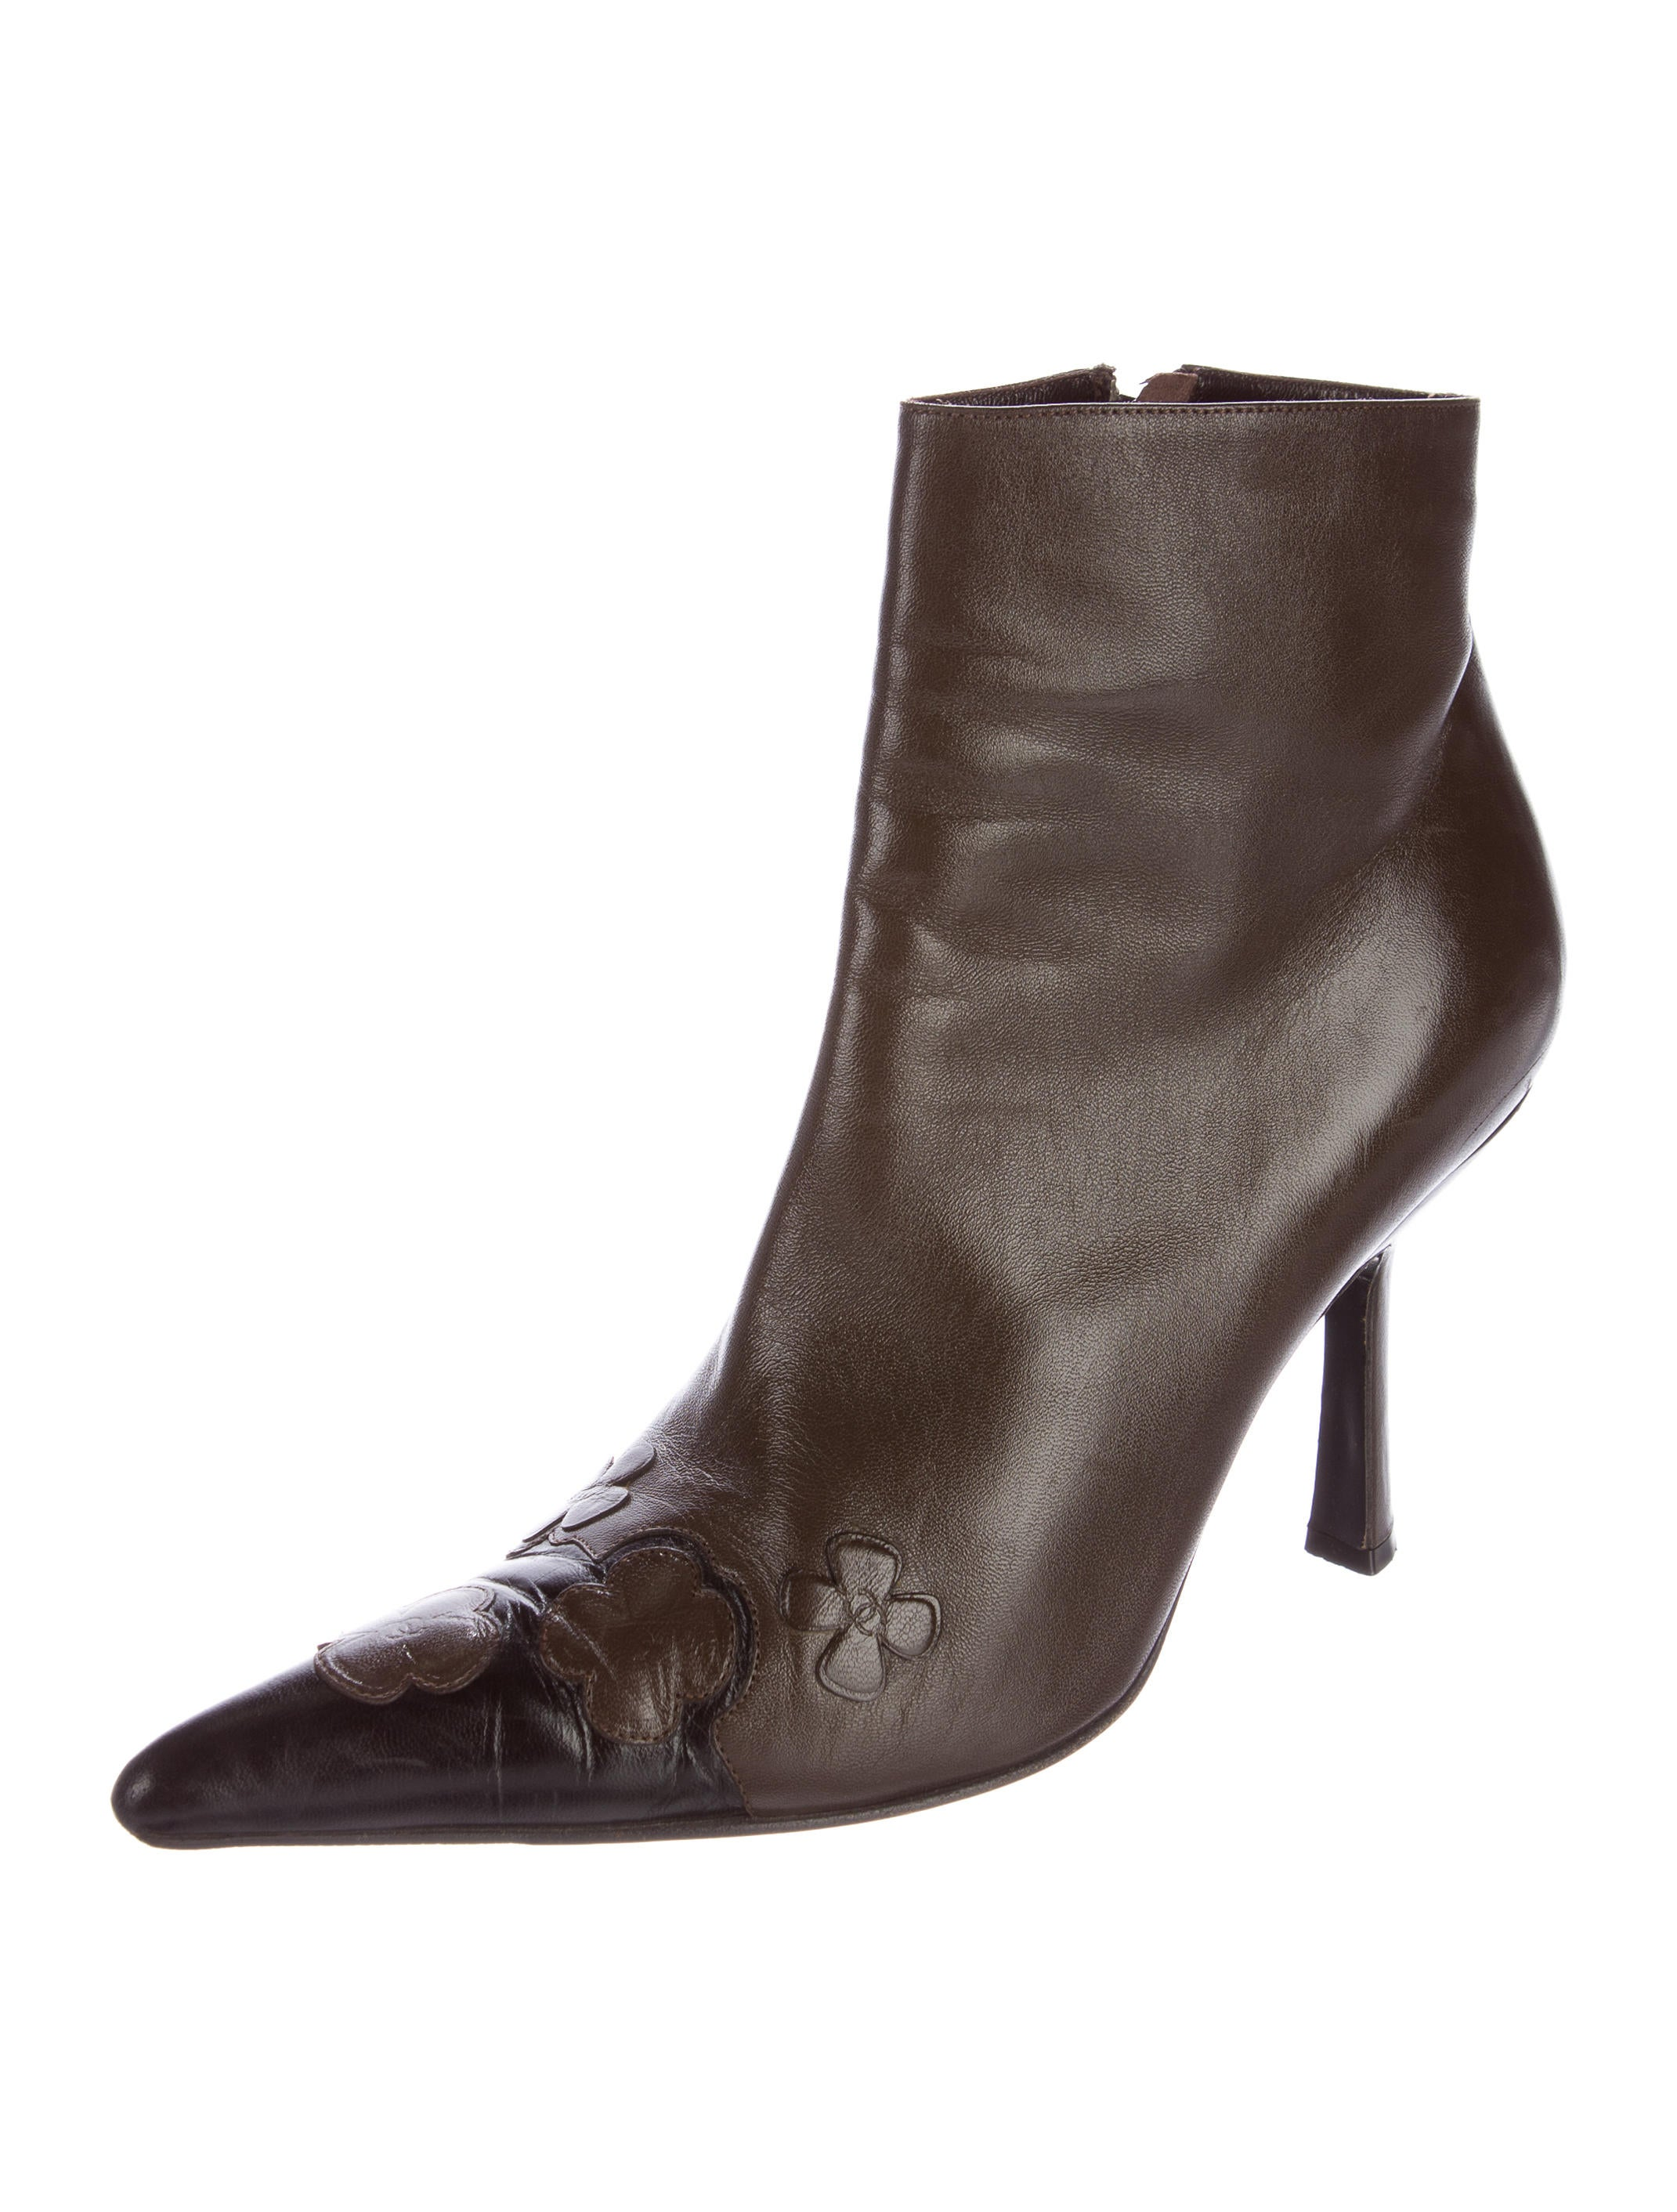 chanel leather pointed toe ankle boots shoes cha158081